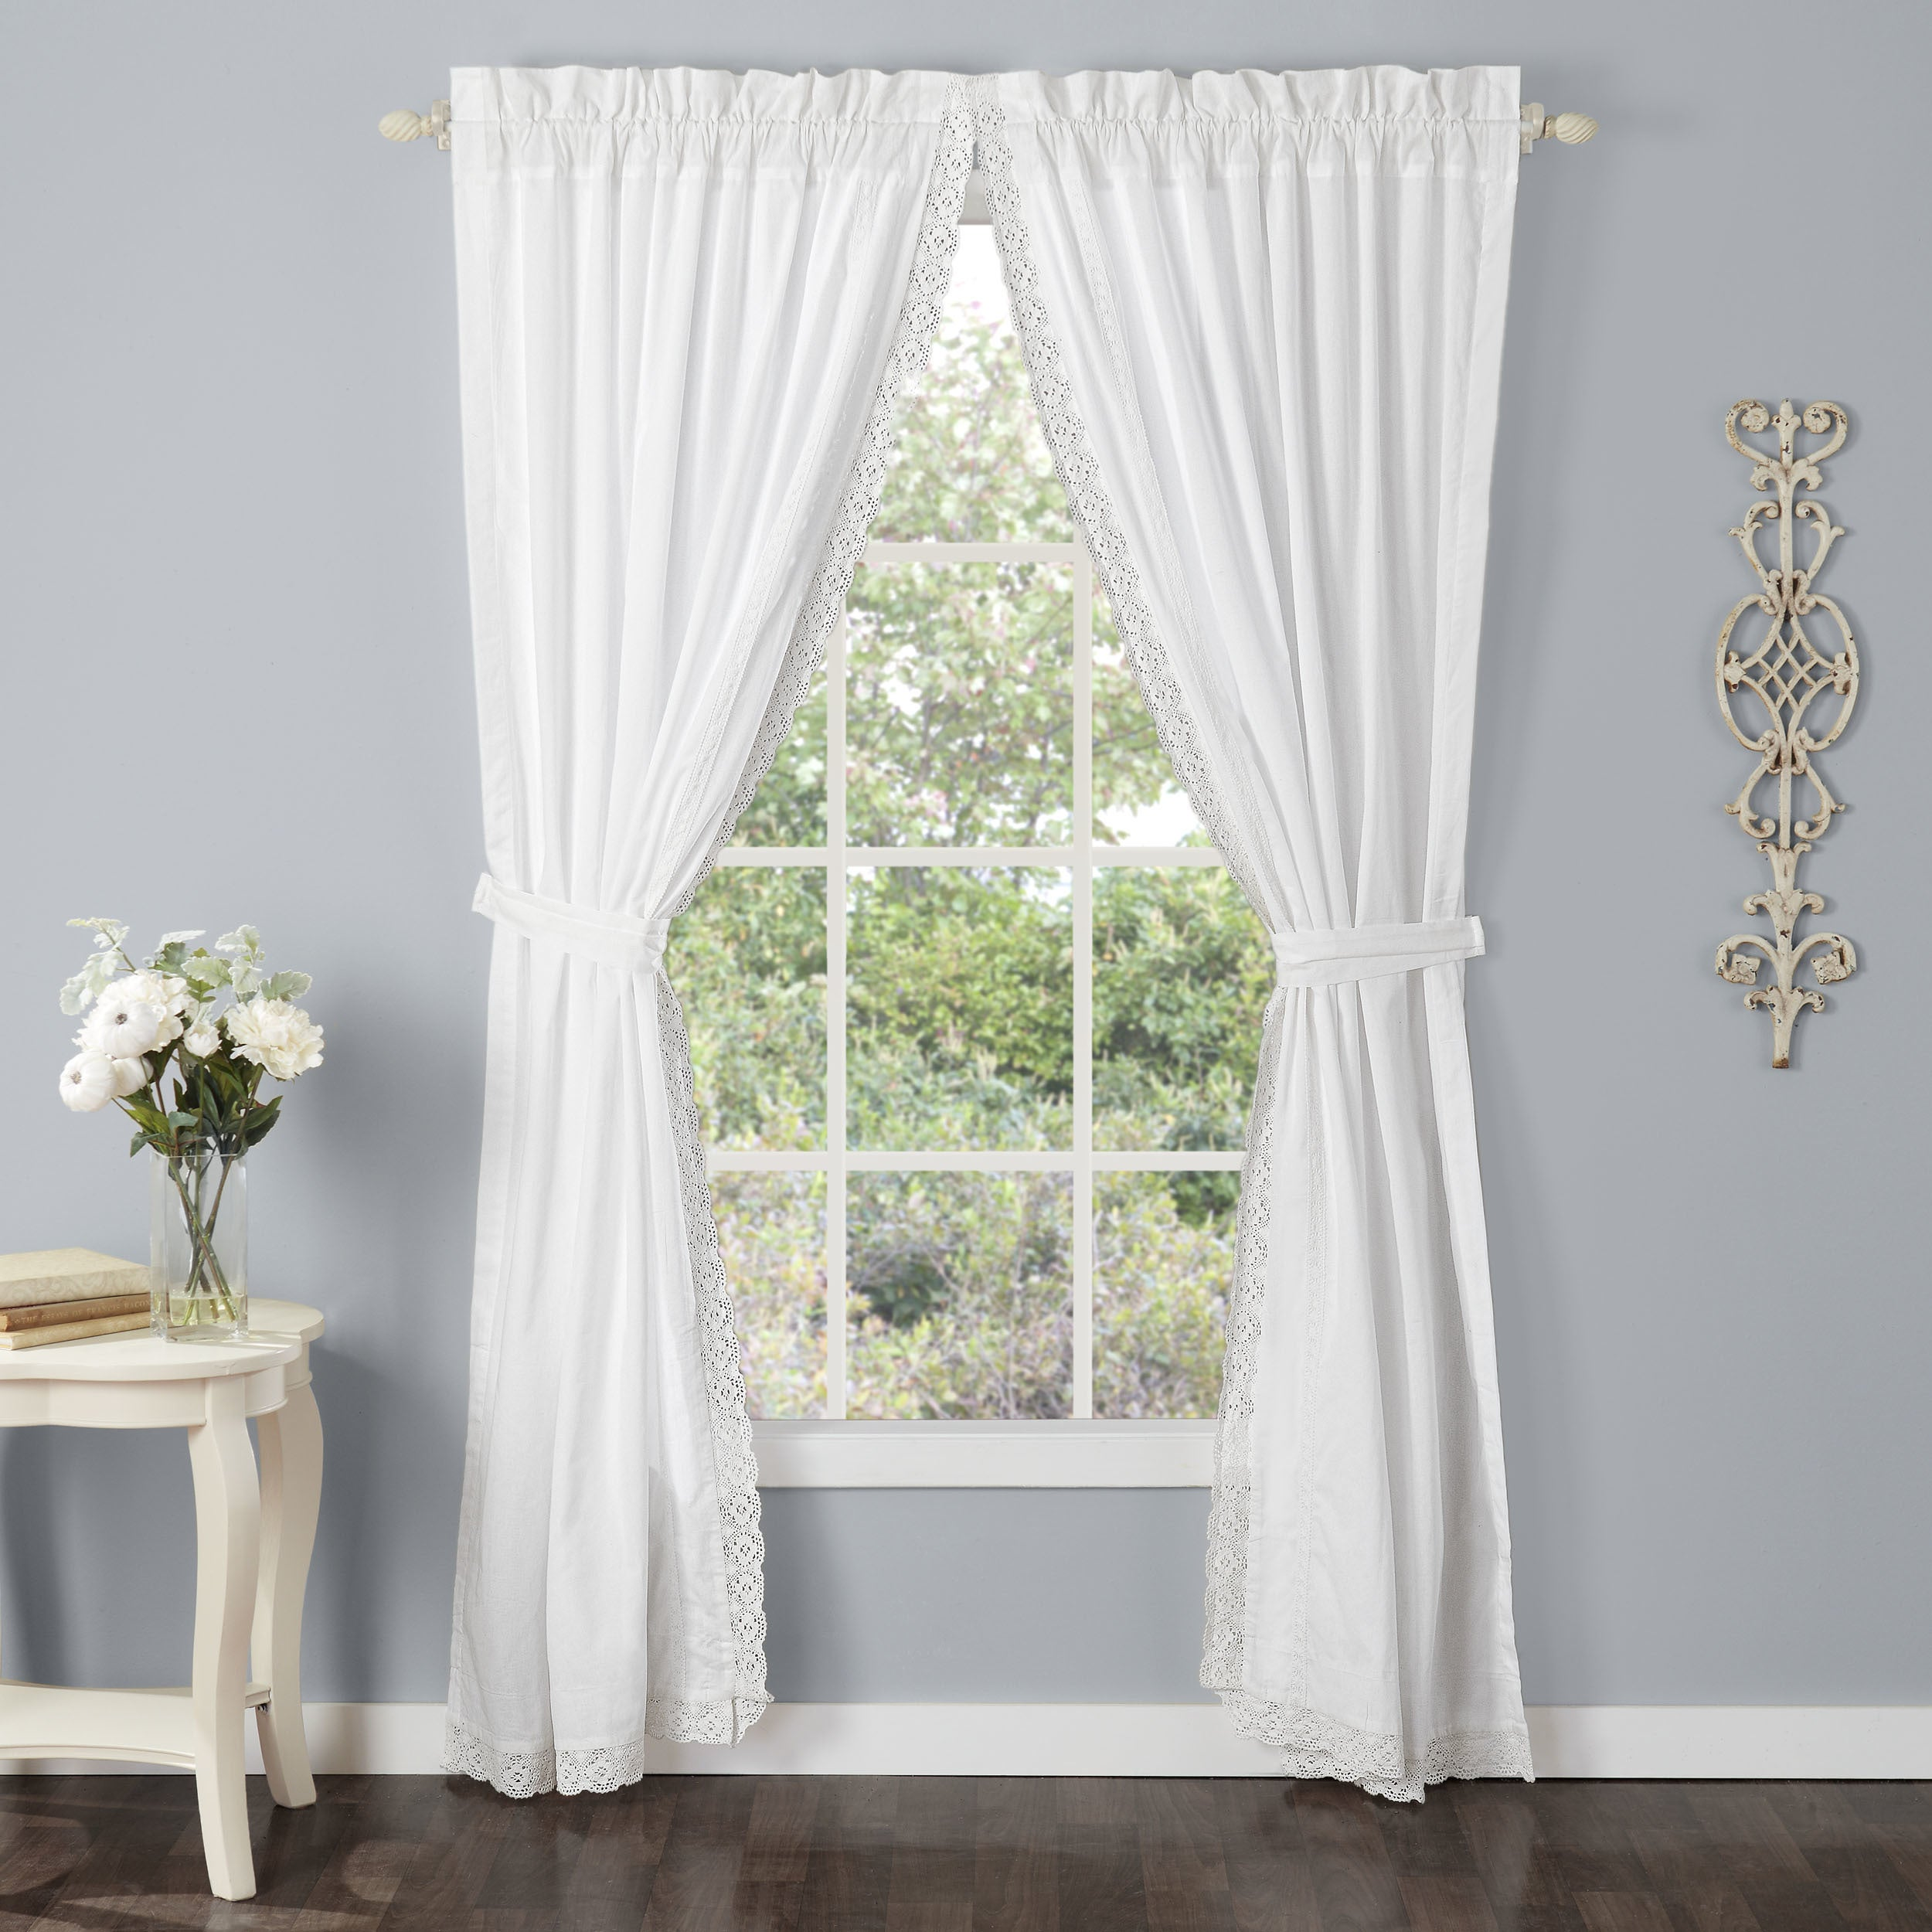 Laura Ashley Annabella Lace Curtain Panel Set Free Shipping Today 16372421